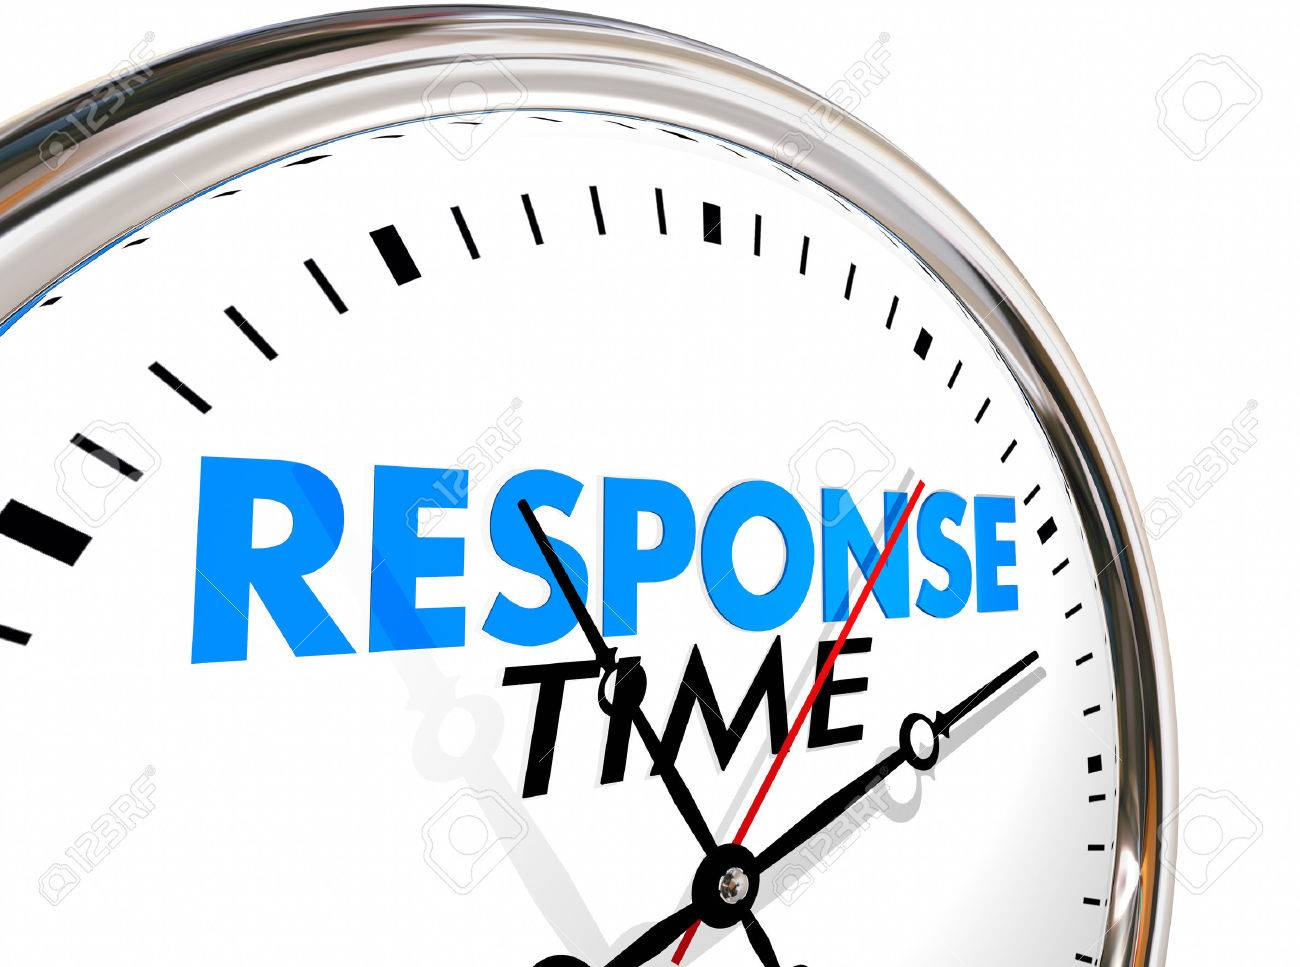 Response Time Clock Fast Speed Service Attention 3d Illustration - 64815856